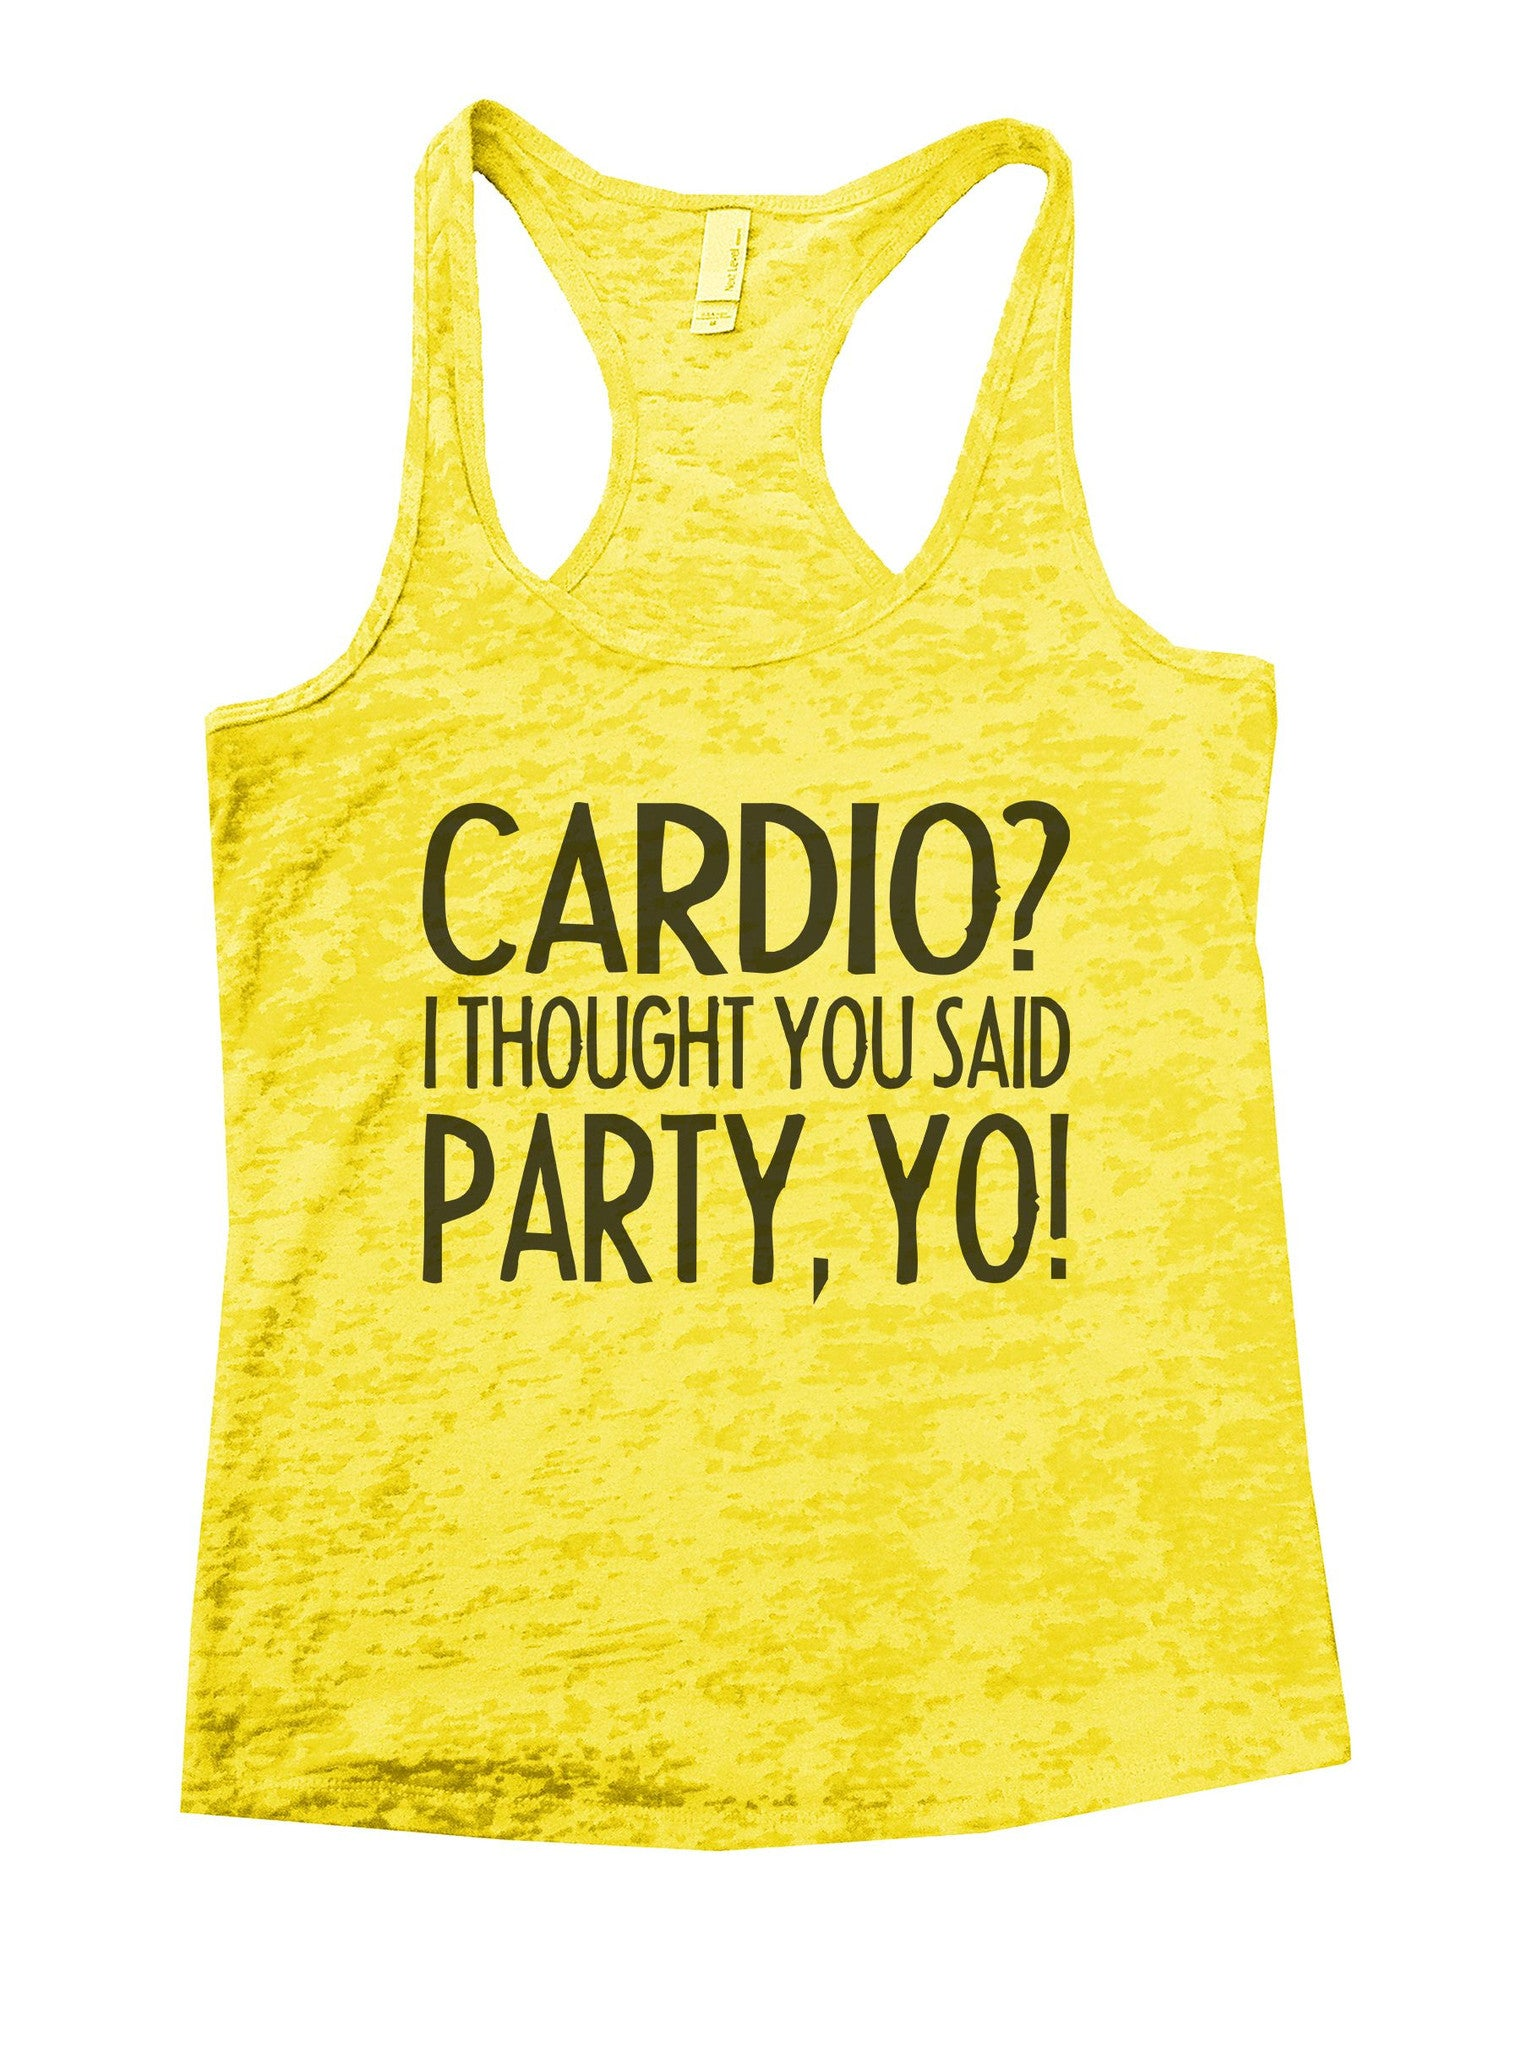 Cardio? I Thought You Said Party, Yo! Burnout Tank Top By BurnoutTankTops.com - 932 - Funny Shirts Tank Tops Burnouts and Triblends  - 5